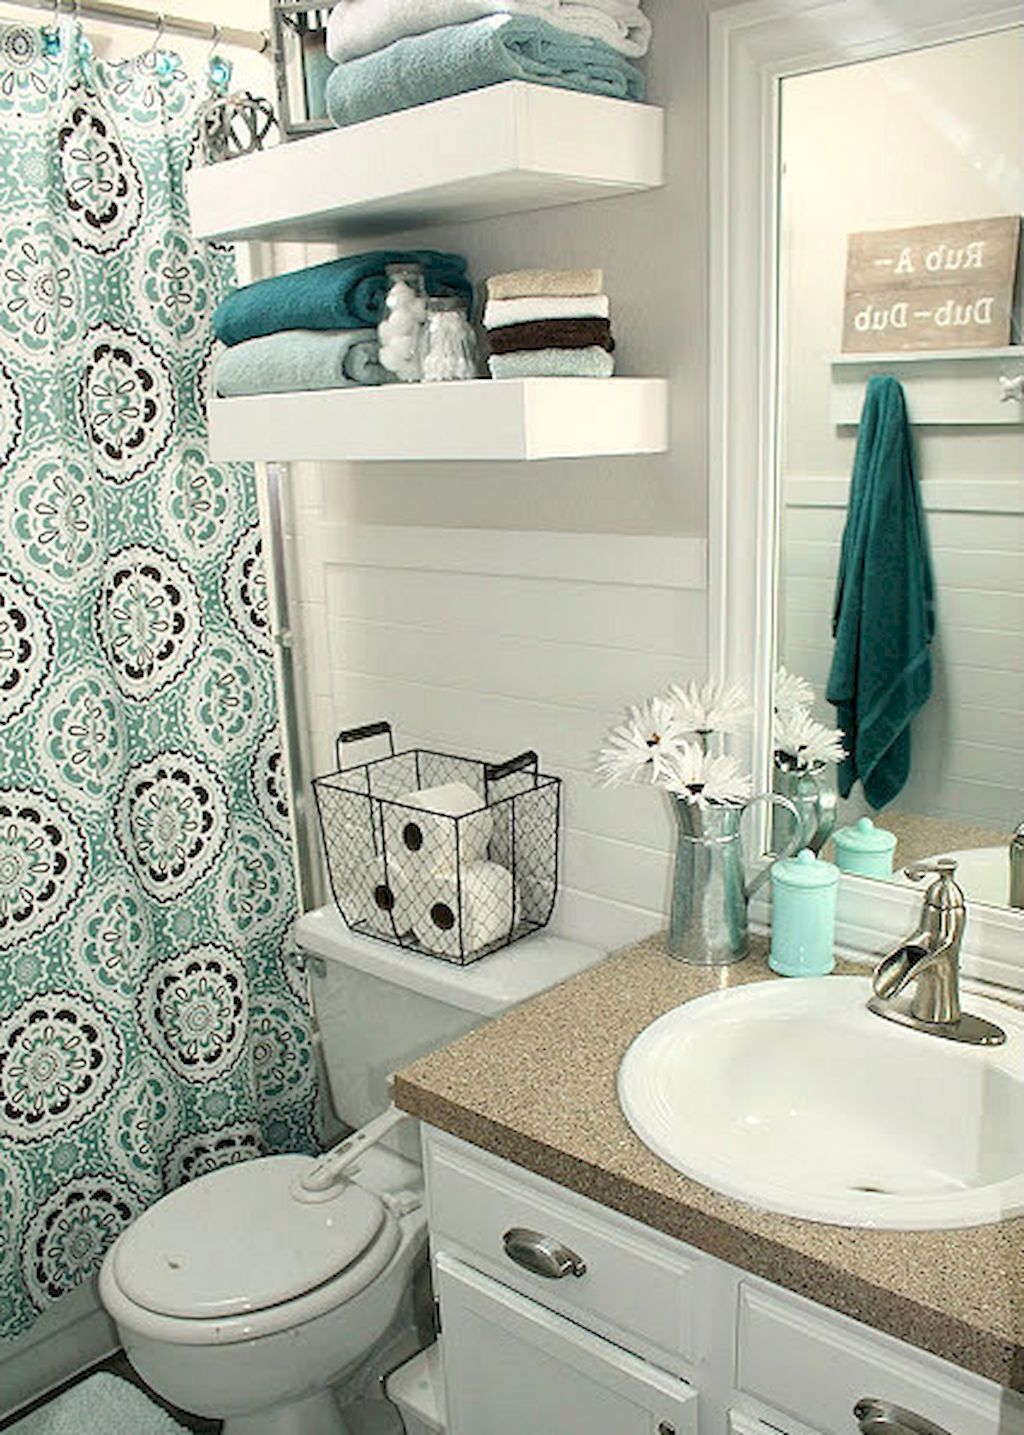 Apartment Bathroom Decorating Ideas On A Budget Adorable Adorable 30 Diy Small Apartment Decorating Ideas On A Budget Https Review